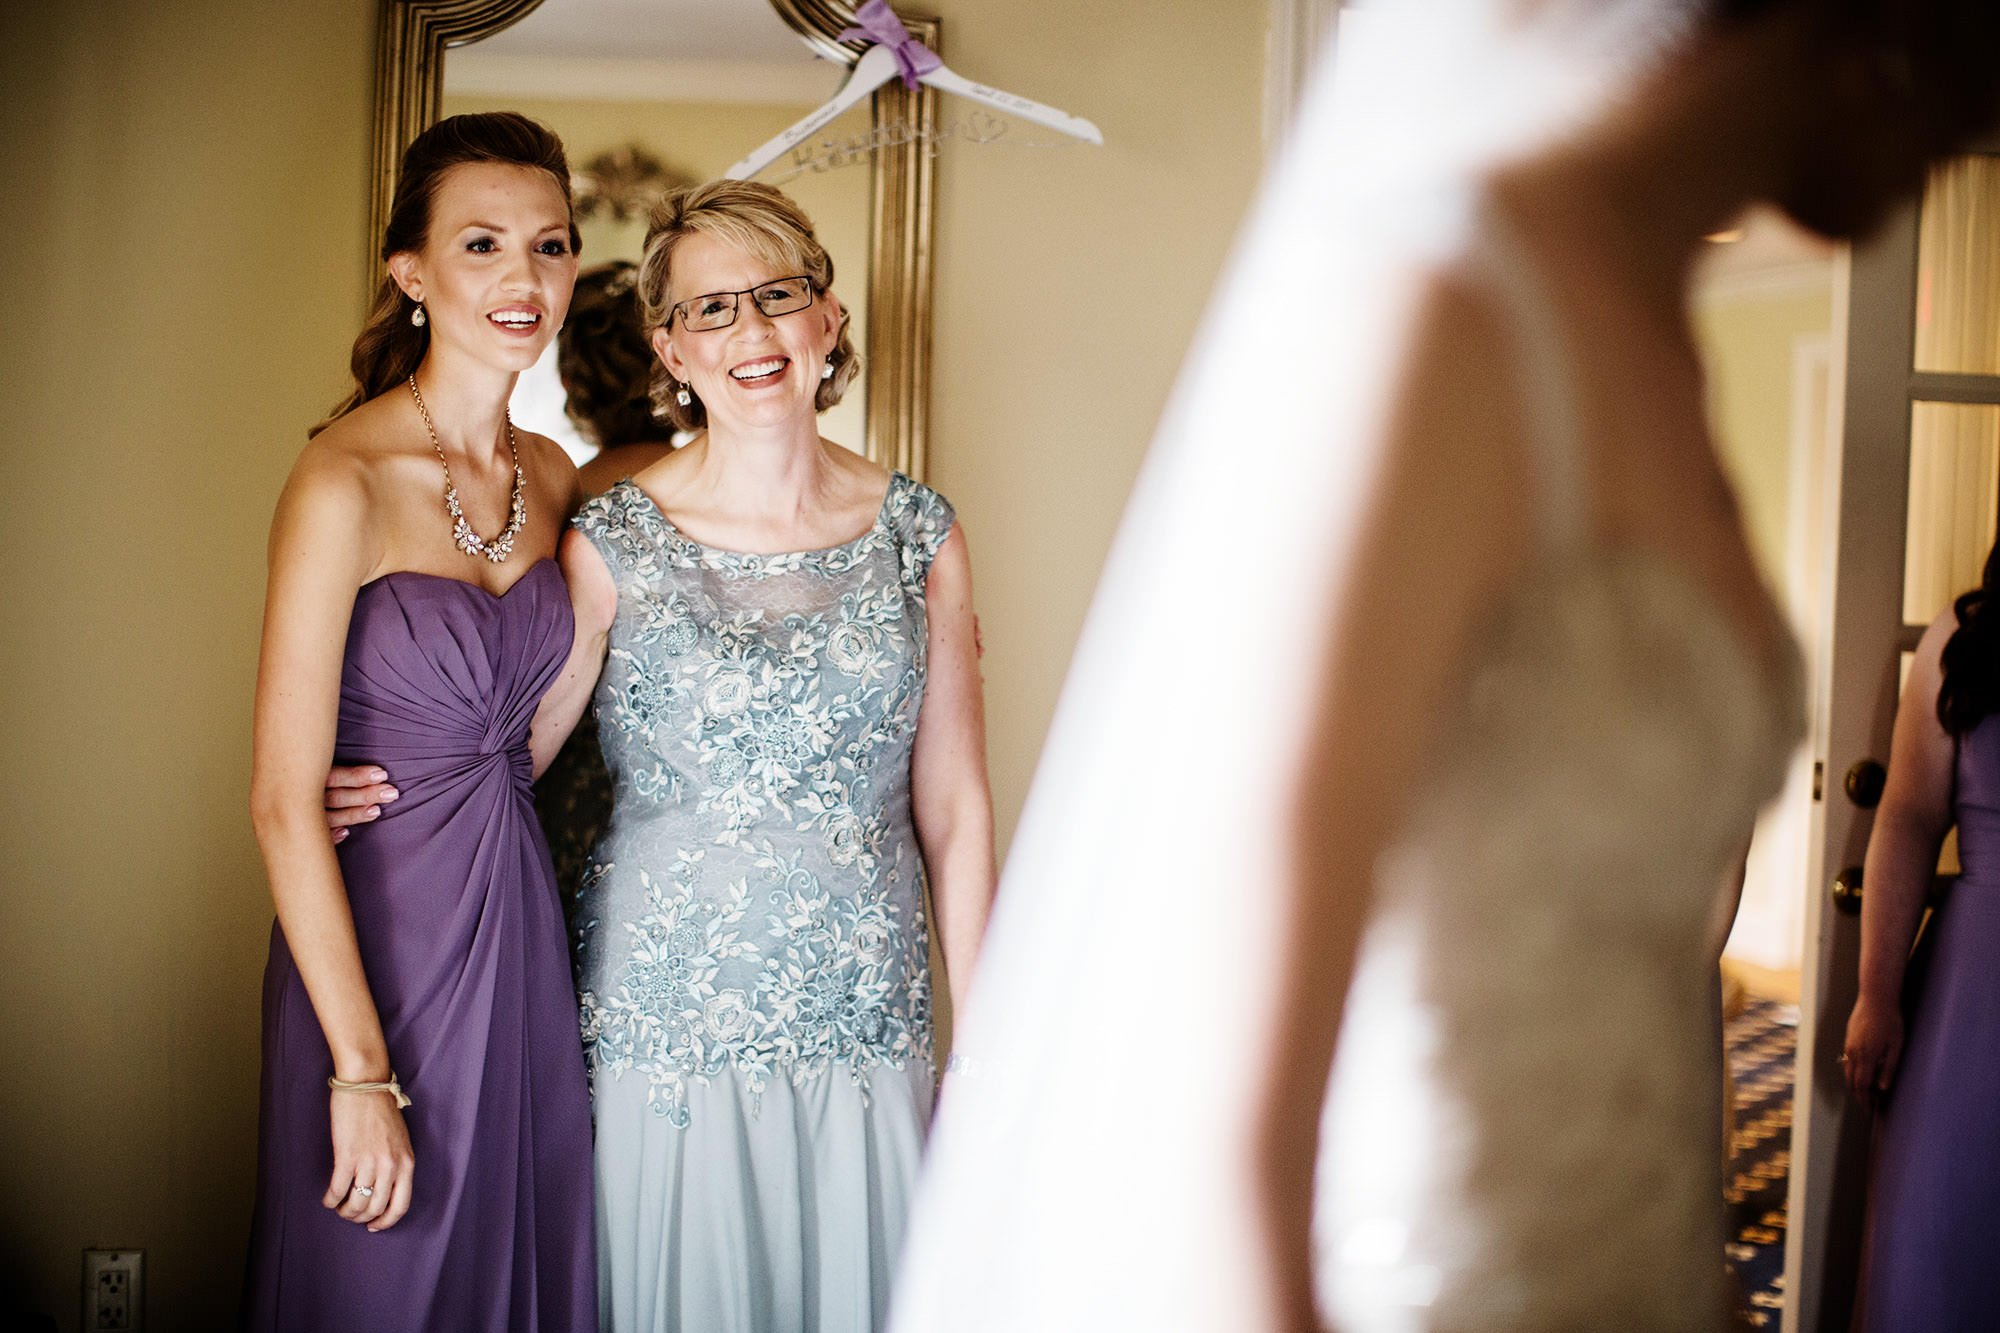 The mother of the bride looks at her daughter in her wedding dress.